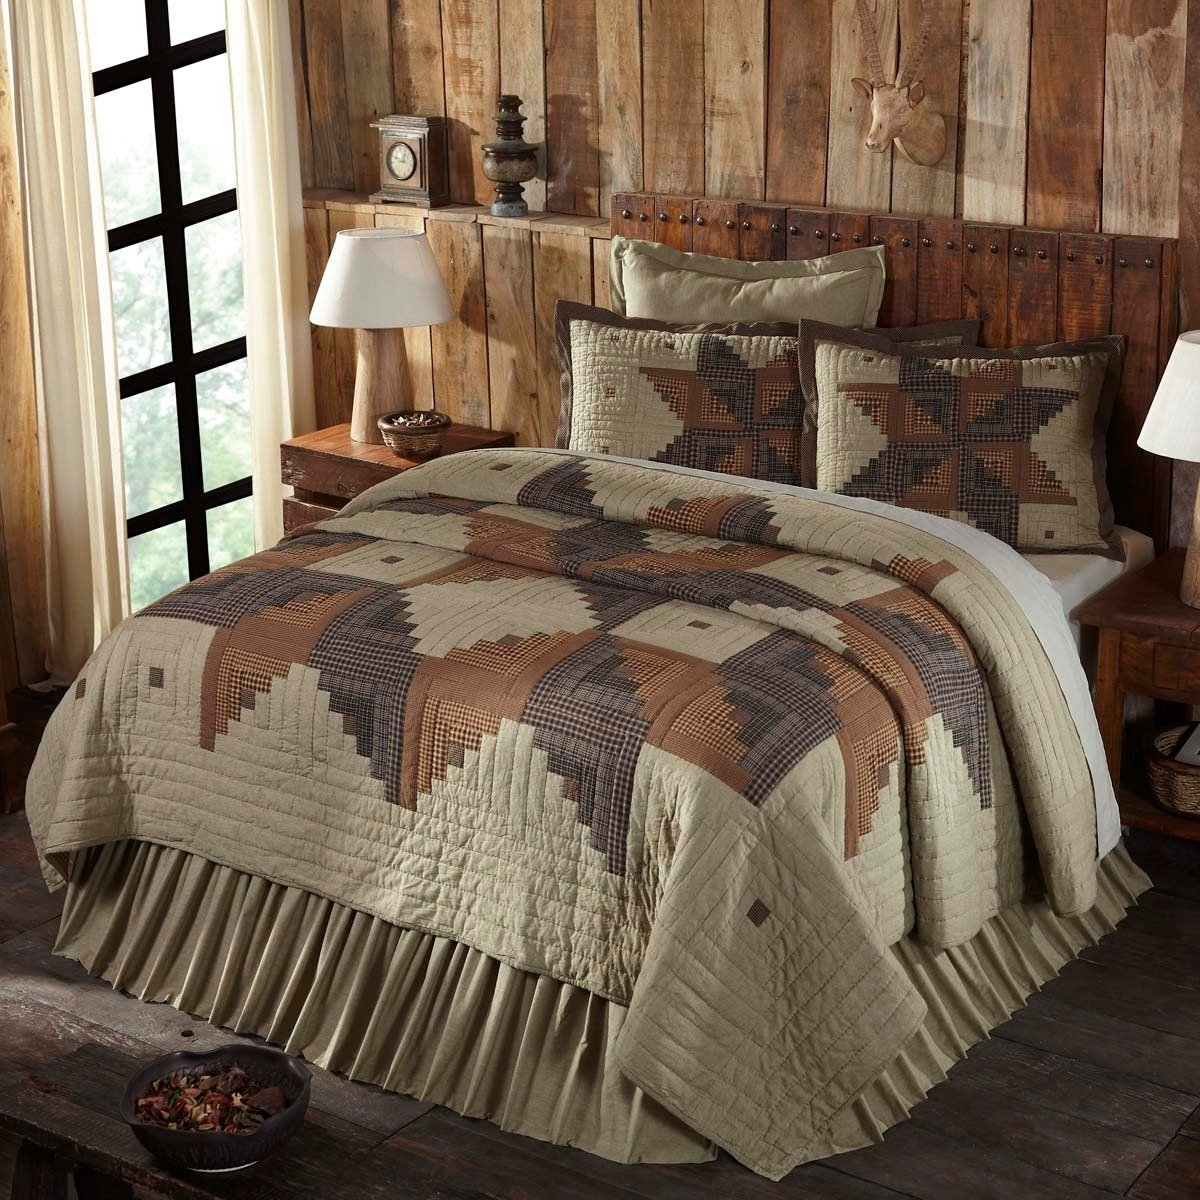 1 Piece Queen, Stylish Elegant Classic Patchwork Pattern Quilt, Traditional Cabin Look Checkered Plaid Design, Contemporary Lodge Themed, Damask Reversible Bedding, Adorable Black, Tan Color Unisex by AF ULTRA (Image #1)